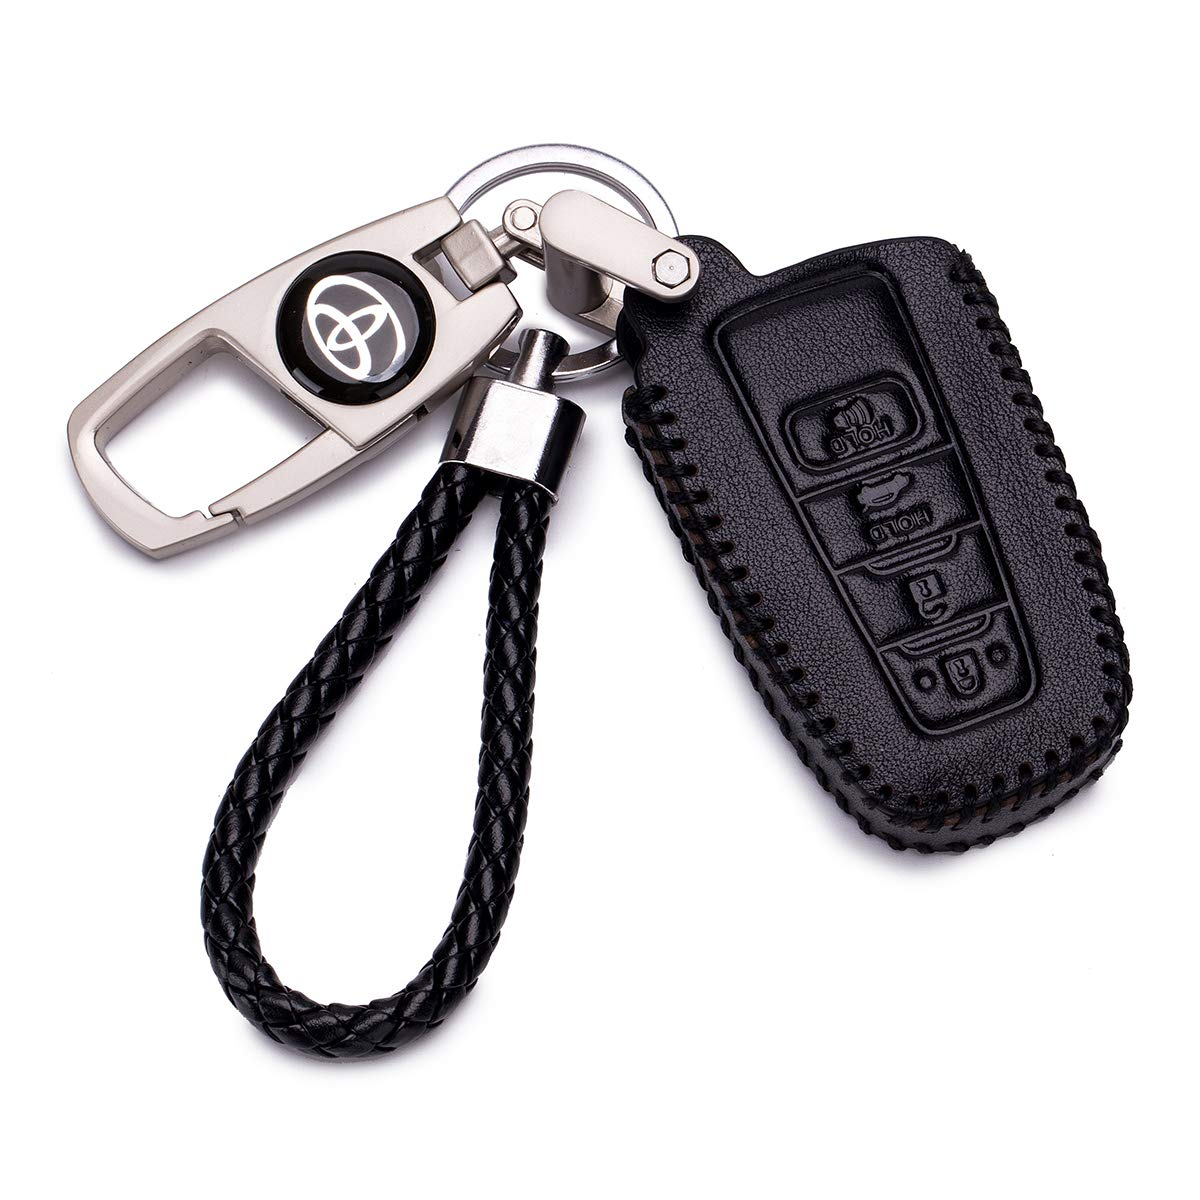 QZS Toyota Key fob Skin Key Cover Remote Case Protector Shell for 2018 Toyota Camry Smart Remote(Toyota-3 Black)